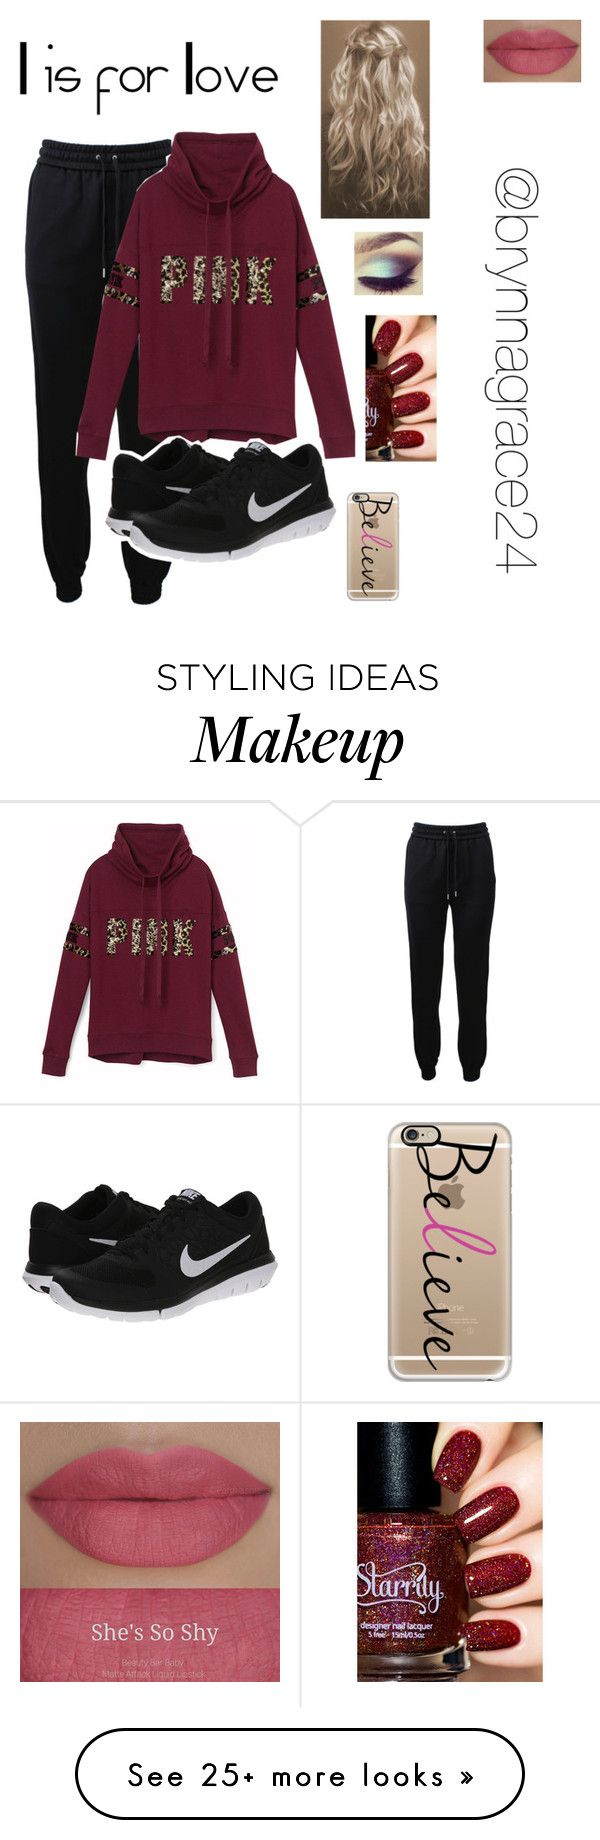 """l is for love"" by berkeleyscout on Polyvore featuring Barbara Bui, Victoria's Secret PINK, NIKE, She's So, Casetify and love"